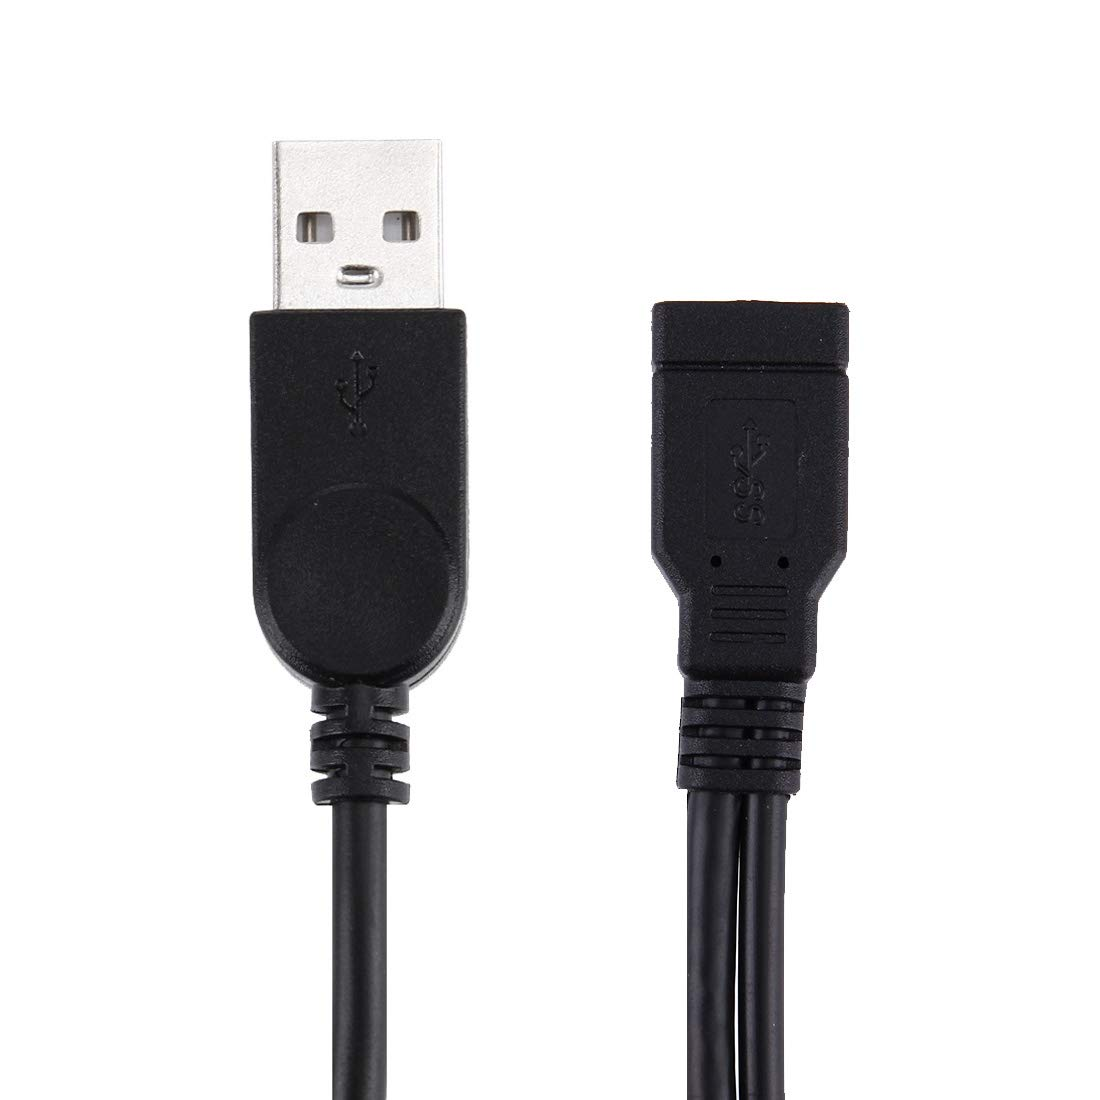 USB Cables 2 in 1 USB 3.0 Female to USB 2.0 USB 3.0 Male Cable for Computer//Laptop 29cm Cables /& Interconnects Length